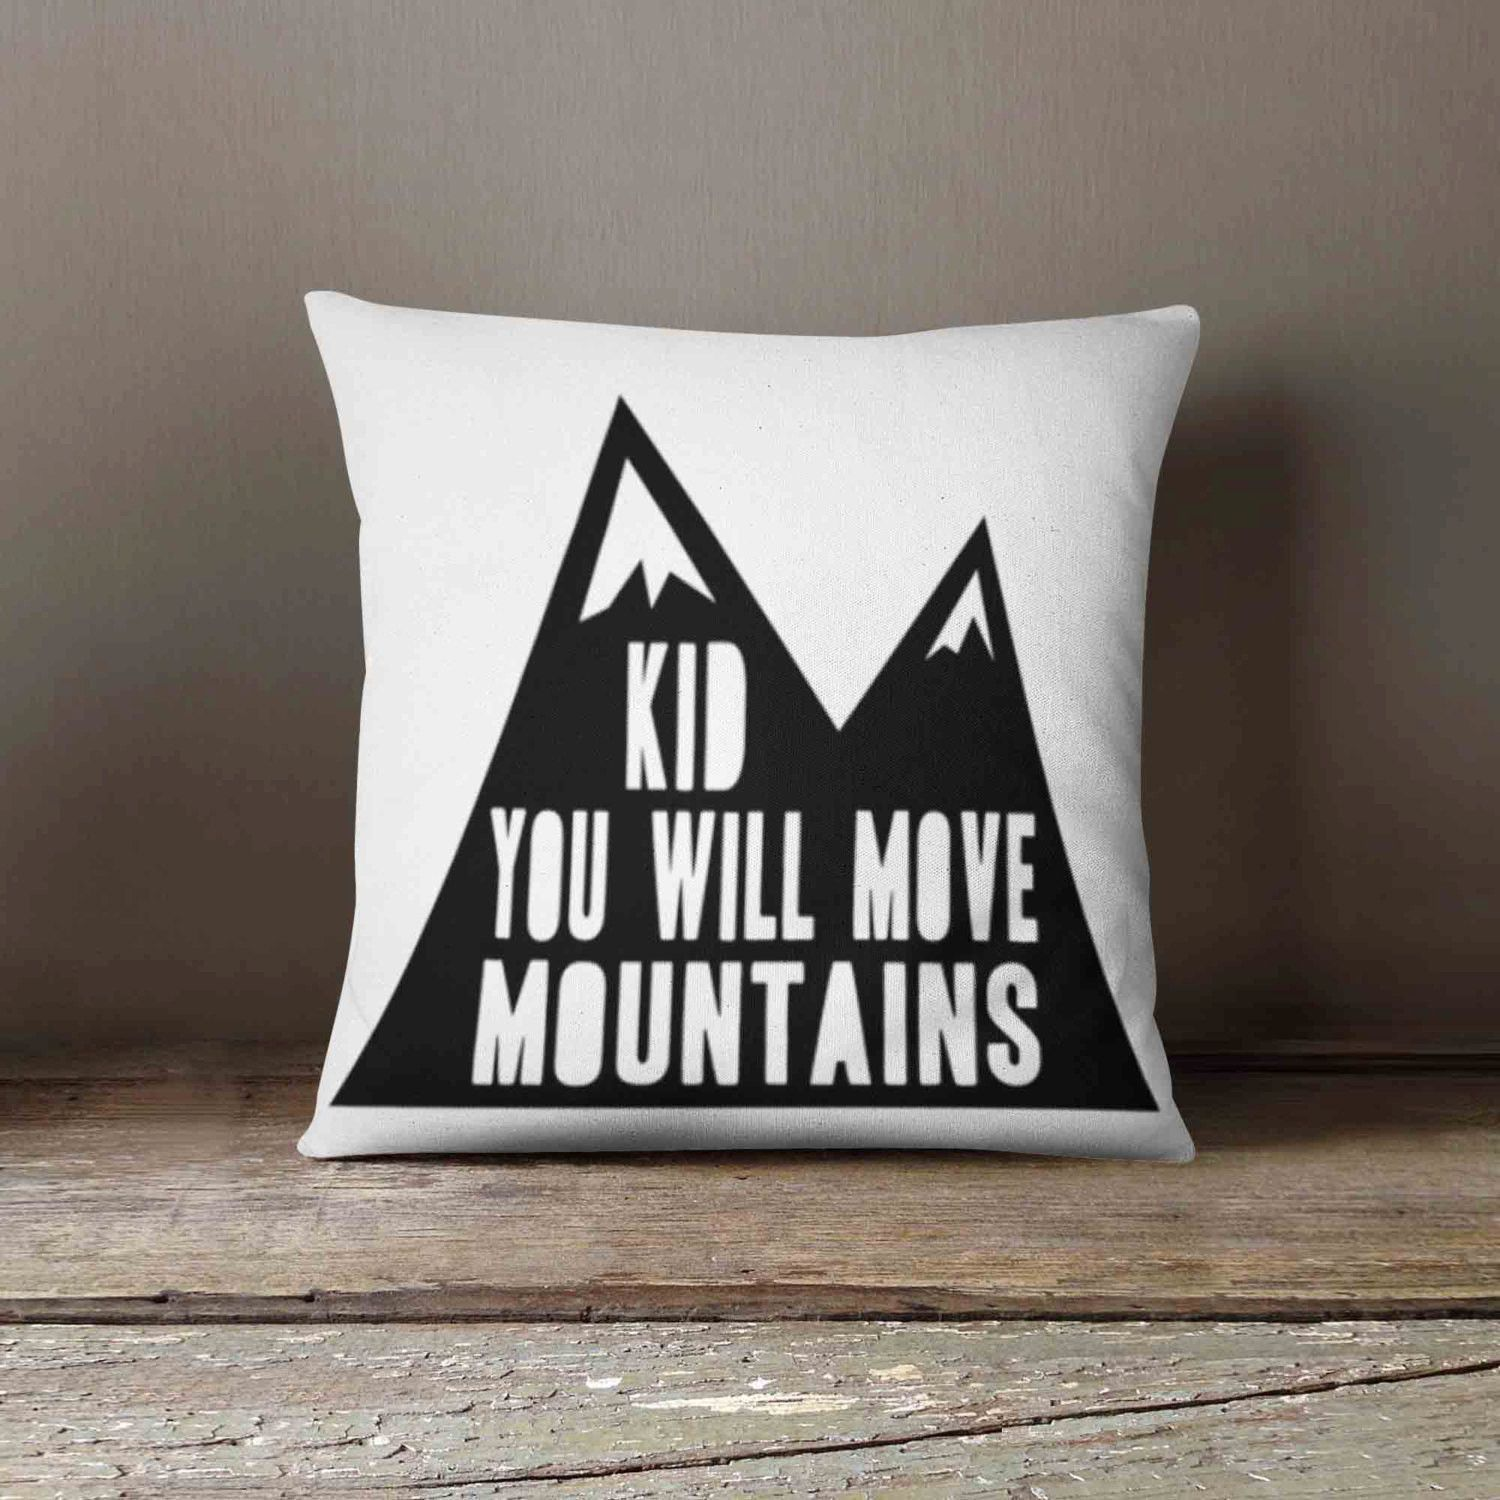 Want to give a little sparkle or dazzle to any nursery or toddler room   This fun adventurous quote print would be a fun addition to any room!  Cotton pillow ... e3c86cdc9